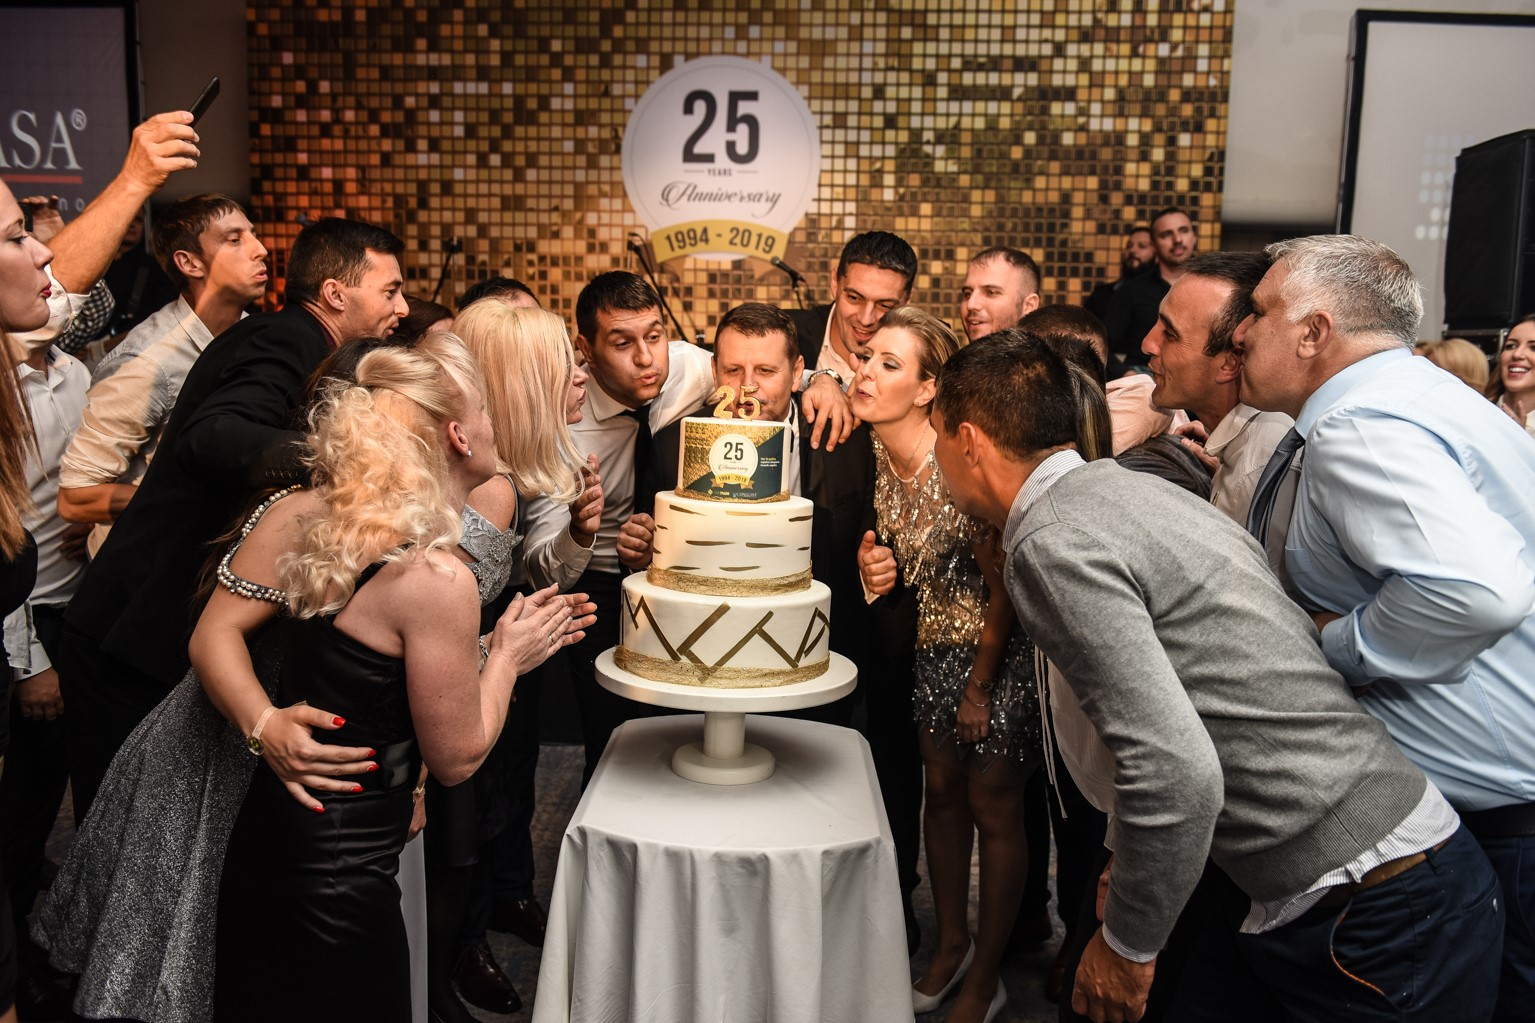 Celebrating 25 years of DIM Trade, event organized by Event Planner and Ana Aleksic - cake